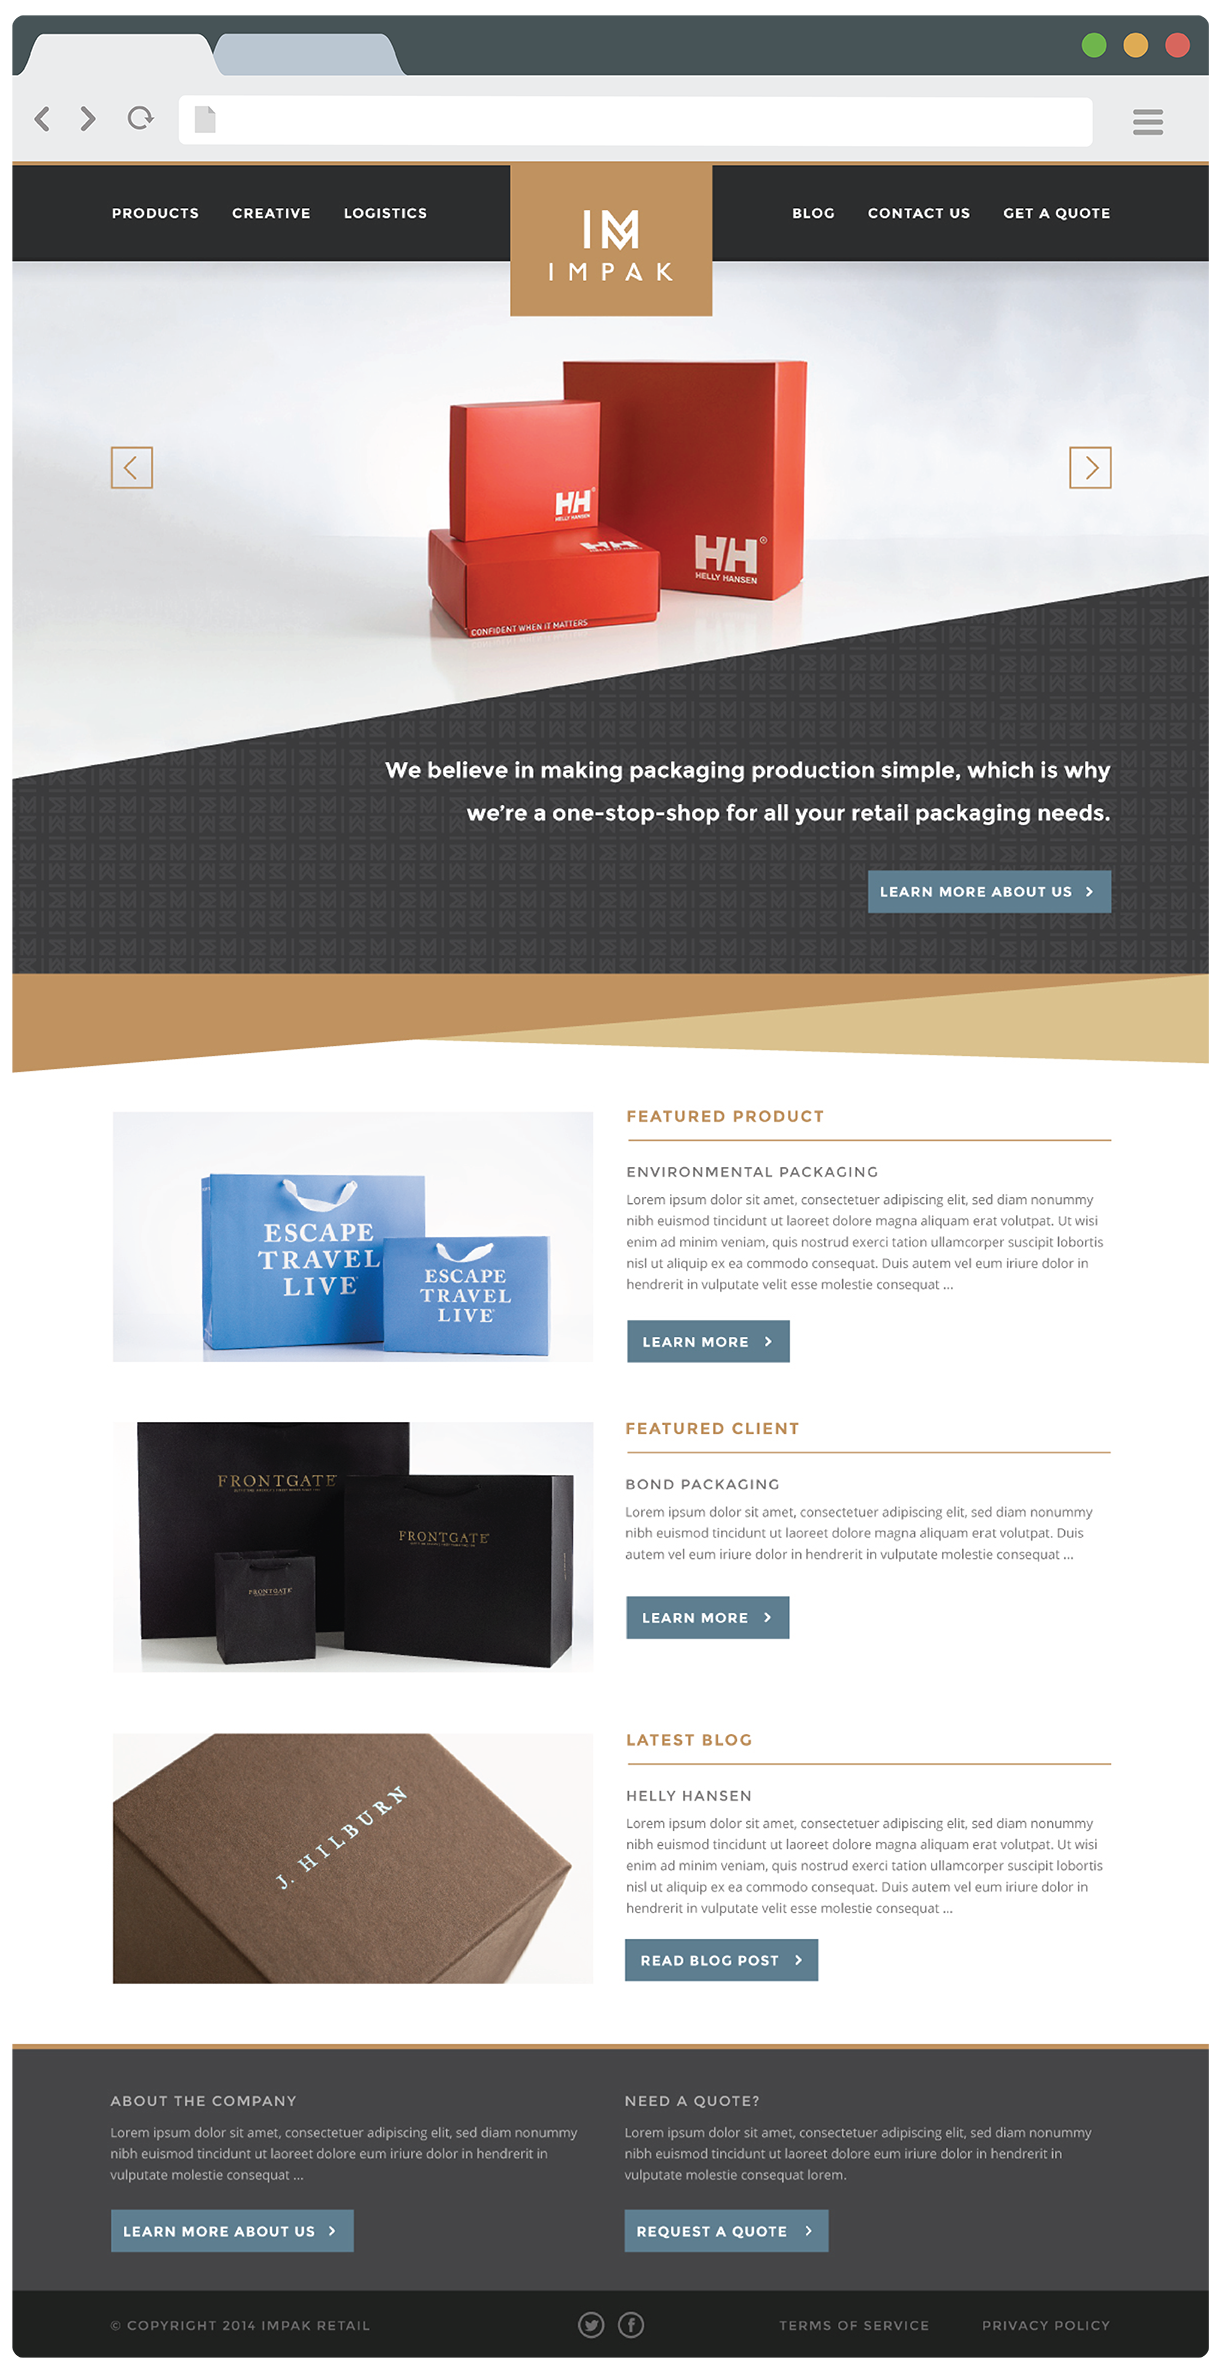 Dallas packaging design firm web design 02 for Design firm